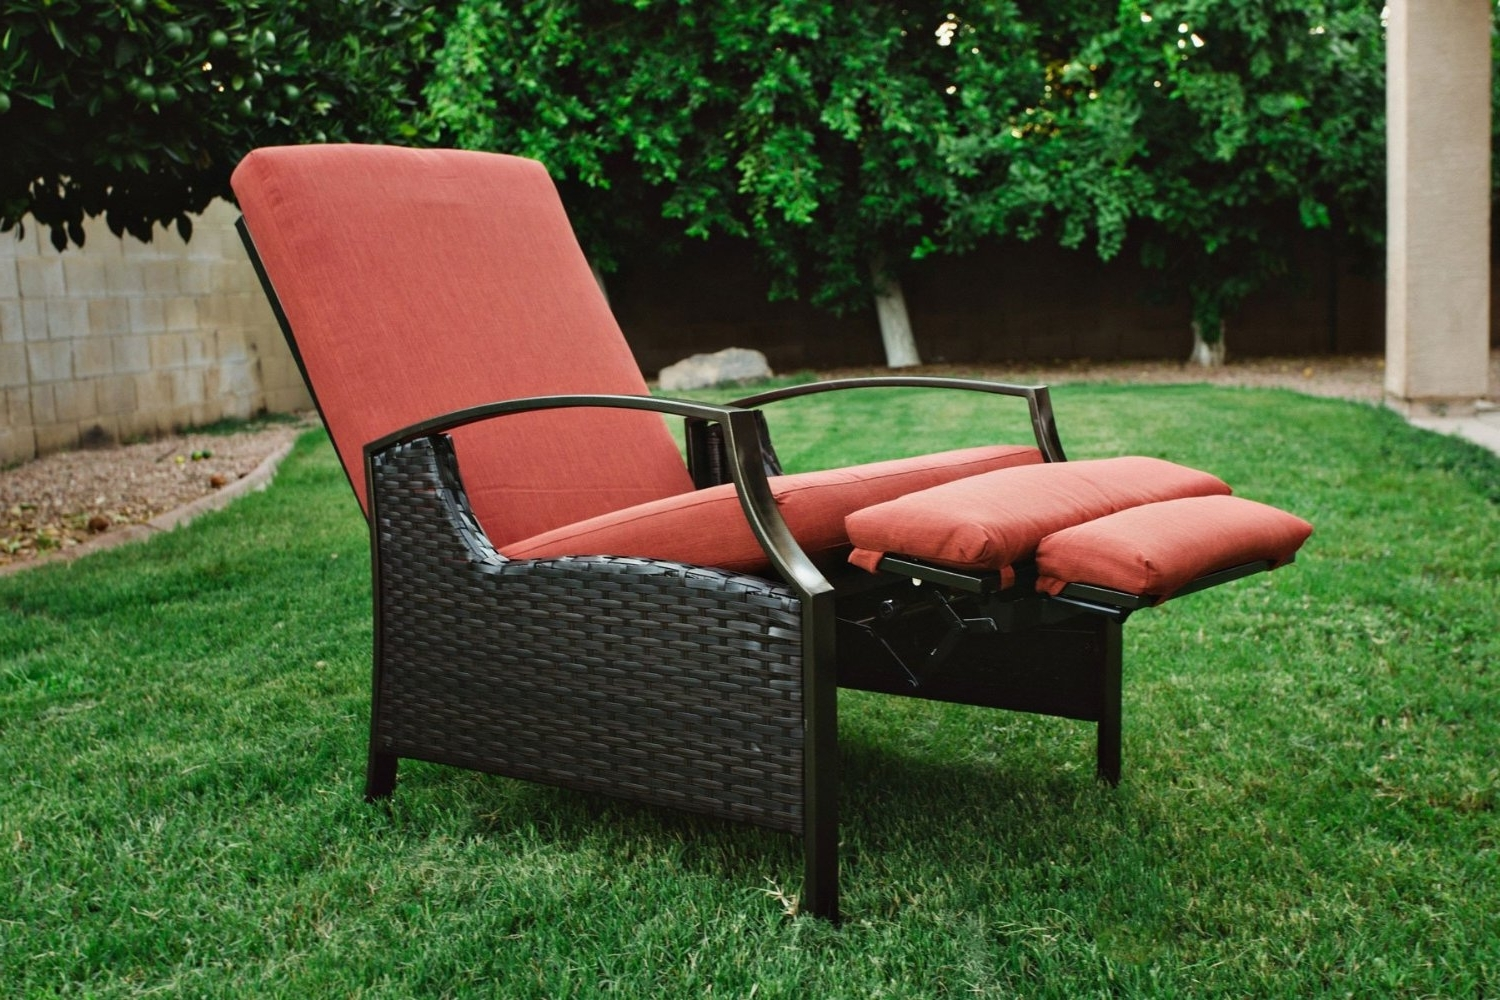 Chaise Lounge Reclining Chairs For Outdoor Throughout Trendy Outdoor : Wayfair Chaise Lounge Chaise Lounge Sofa Most (View 12 of 15)